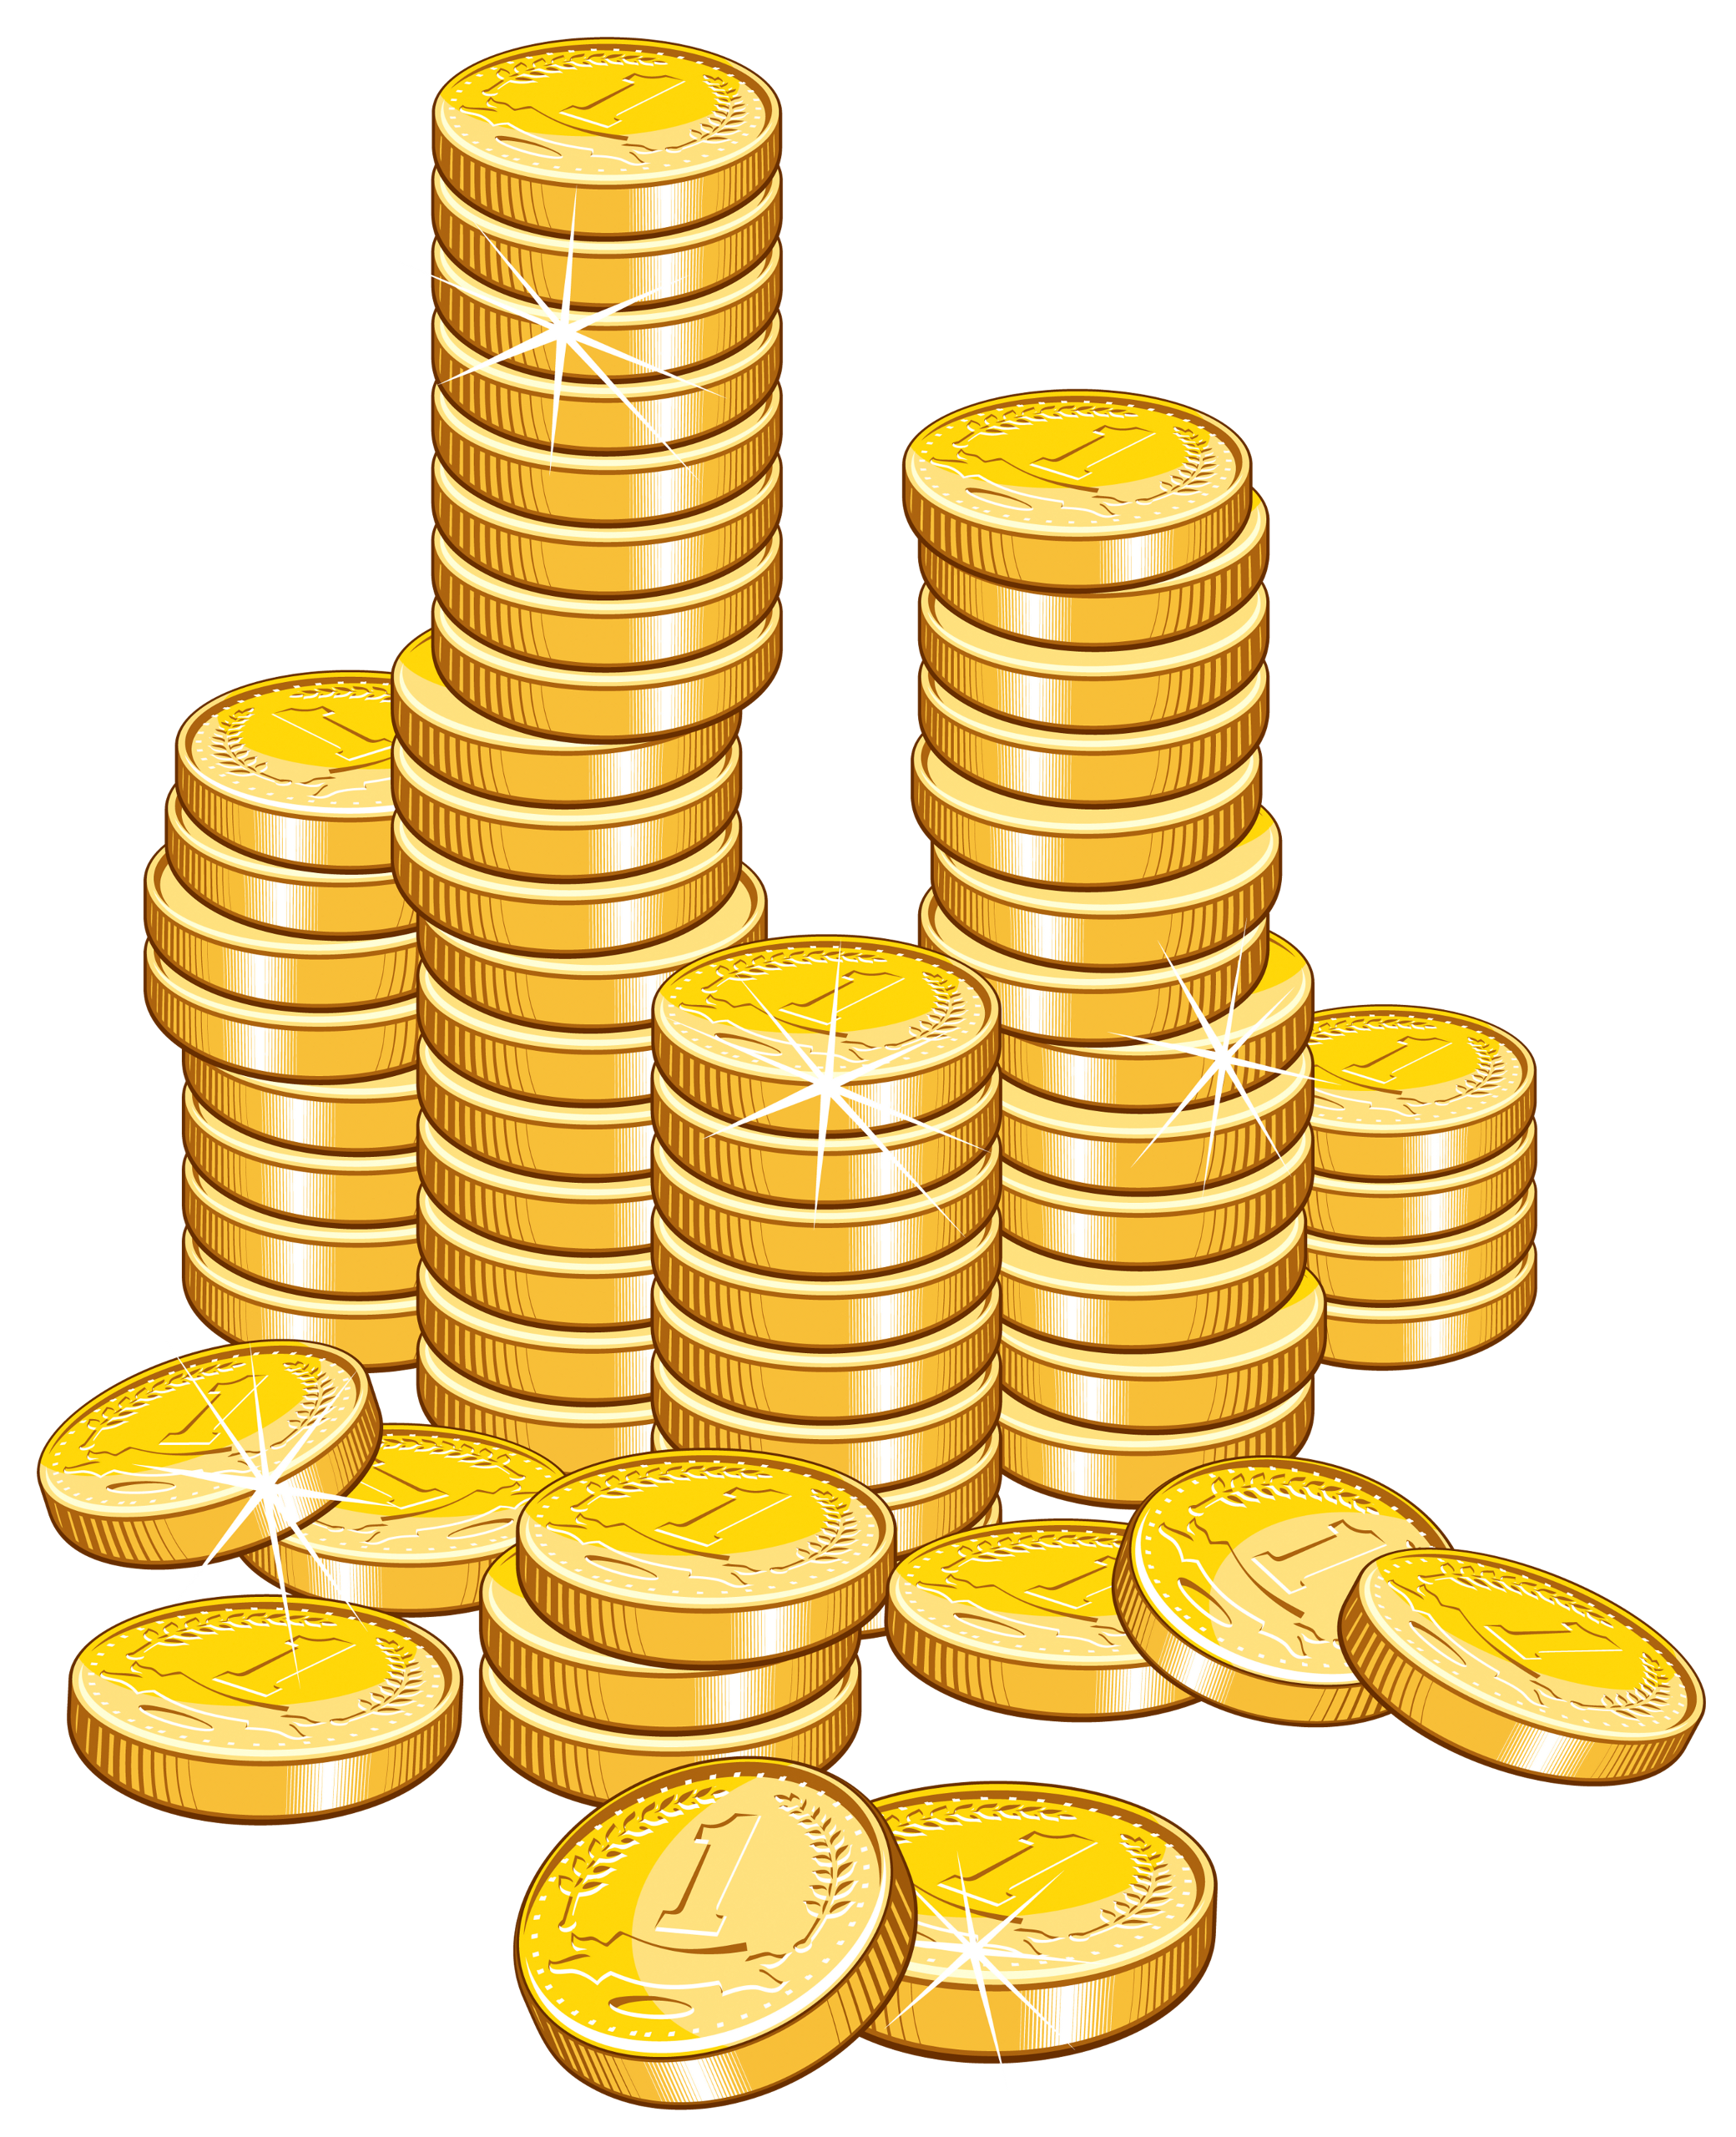 Gold Coin Stack of Money Clipart